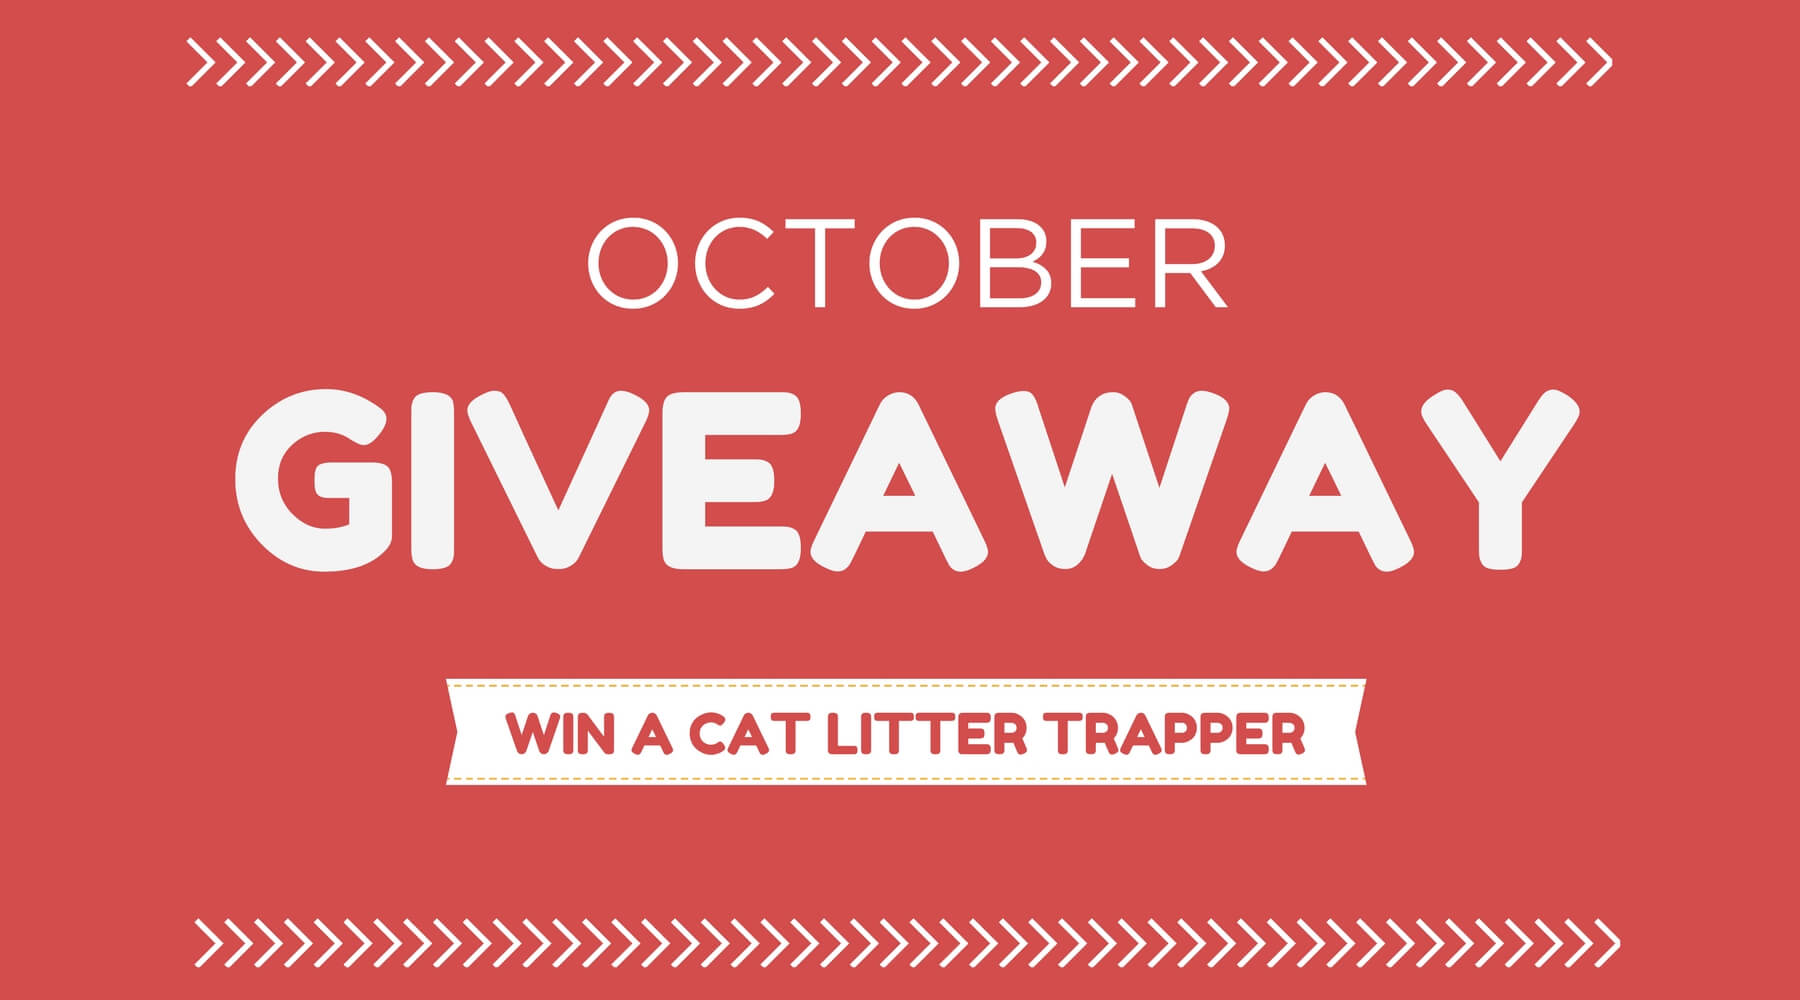 Participate in our October giveaway